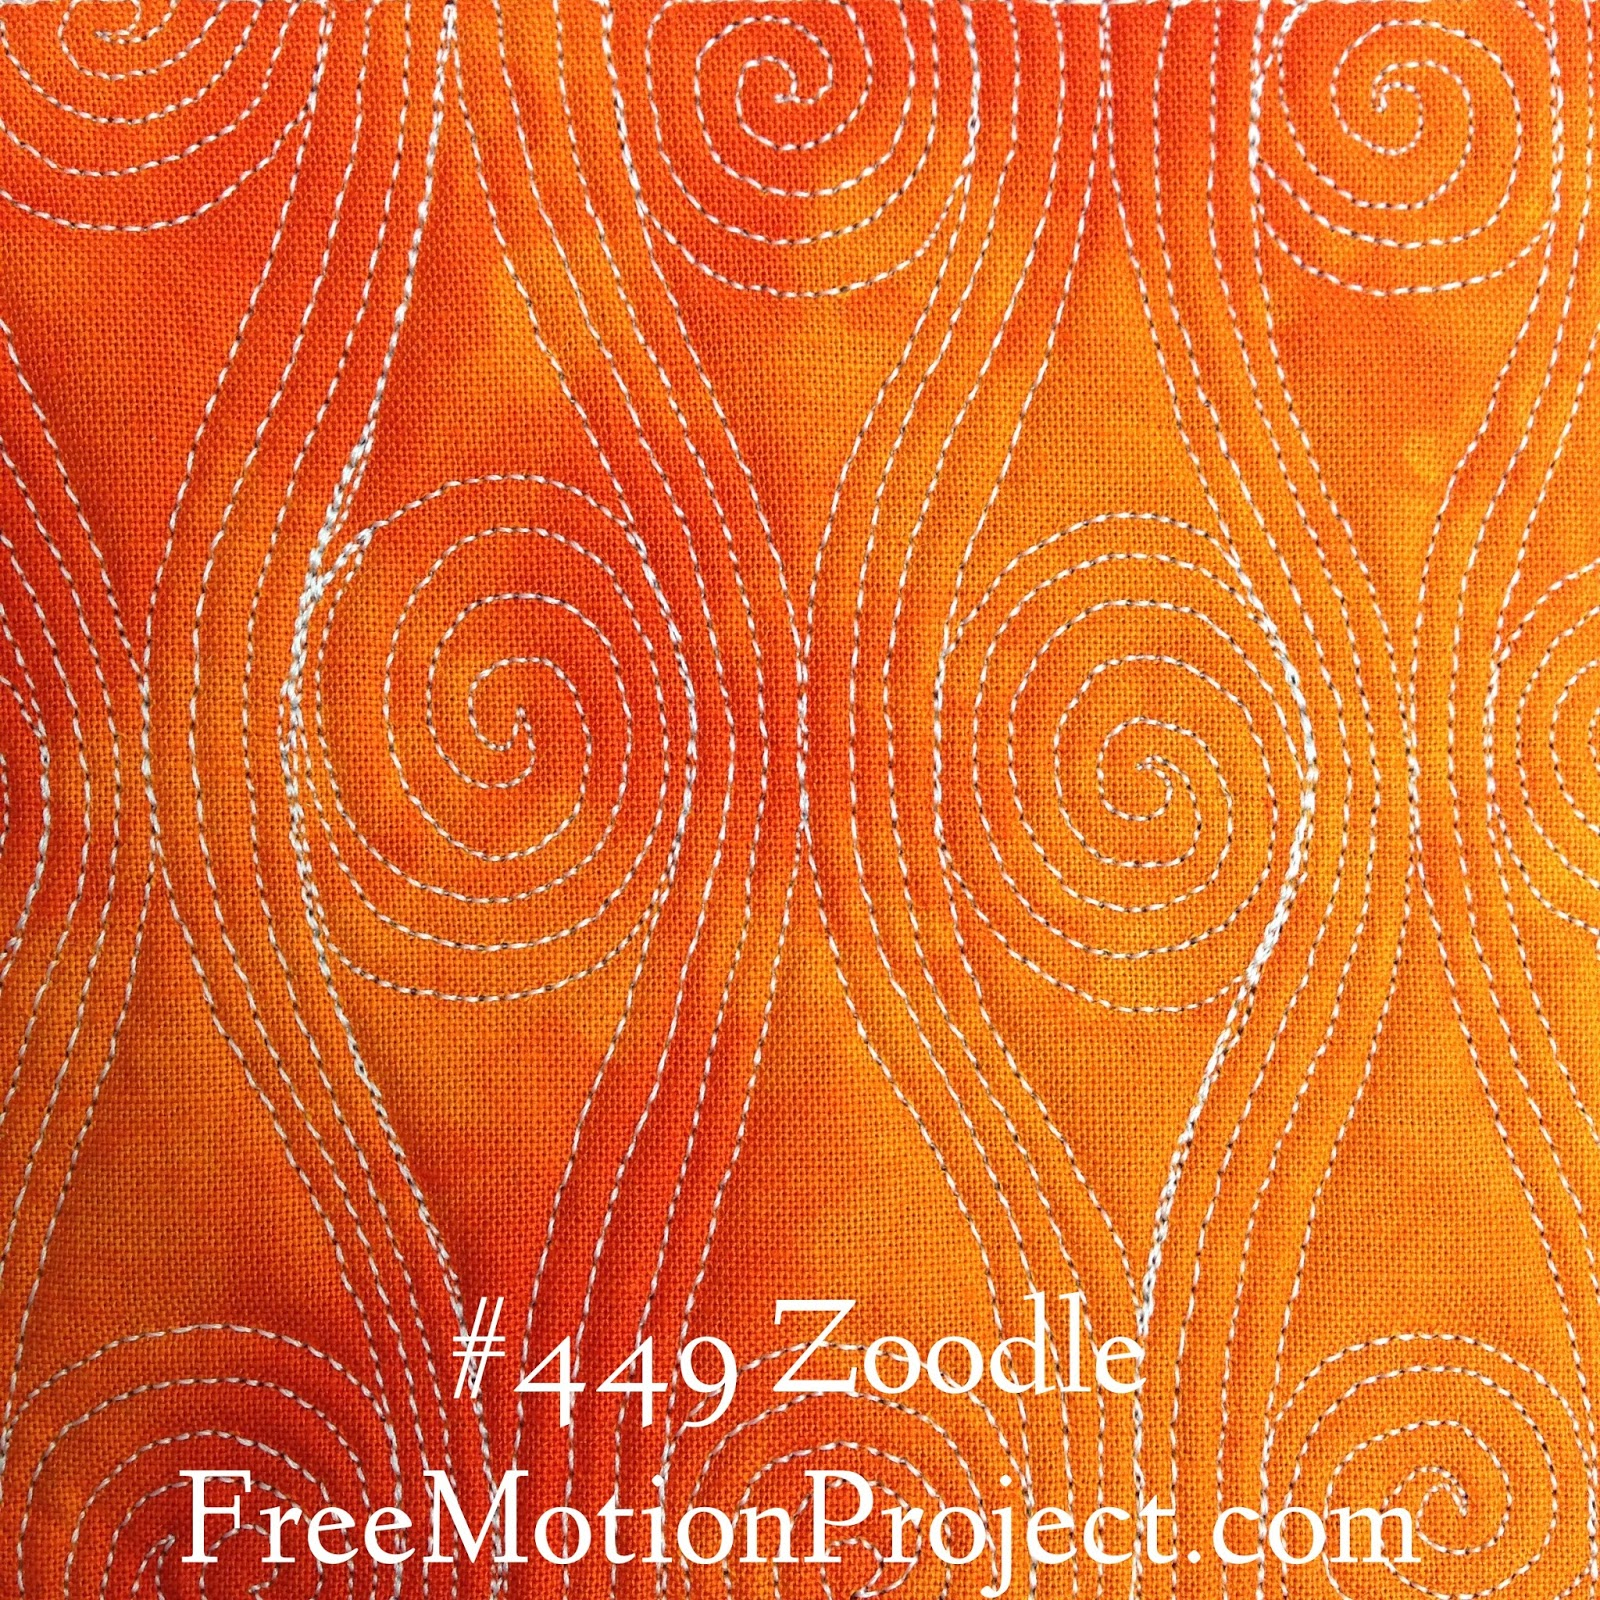 The Free Motion Quilting Project: Free Motion Quilt Zoodle #449